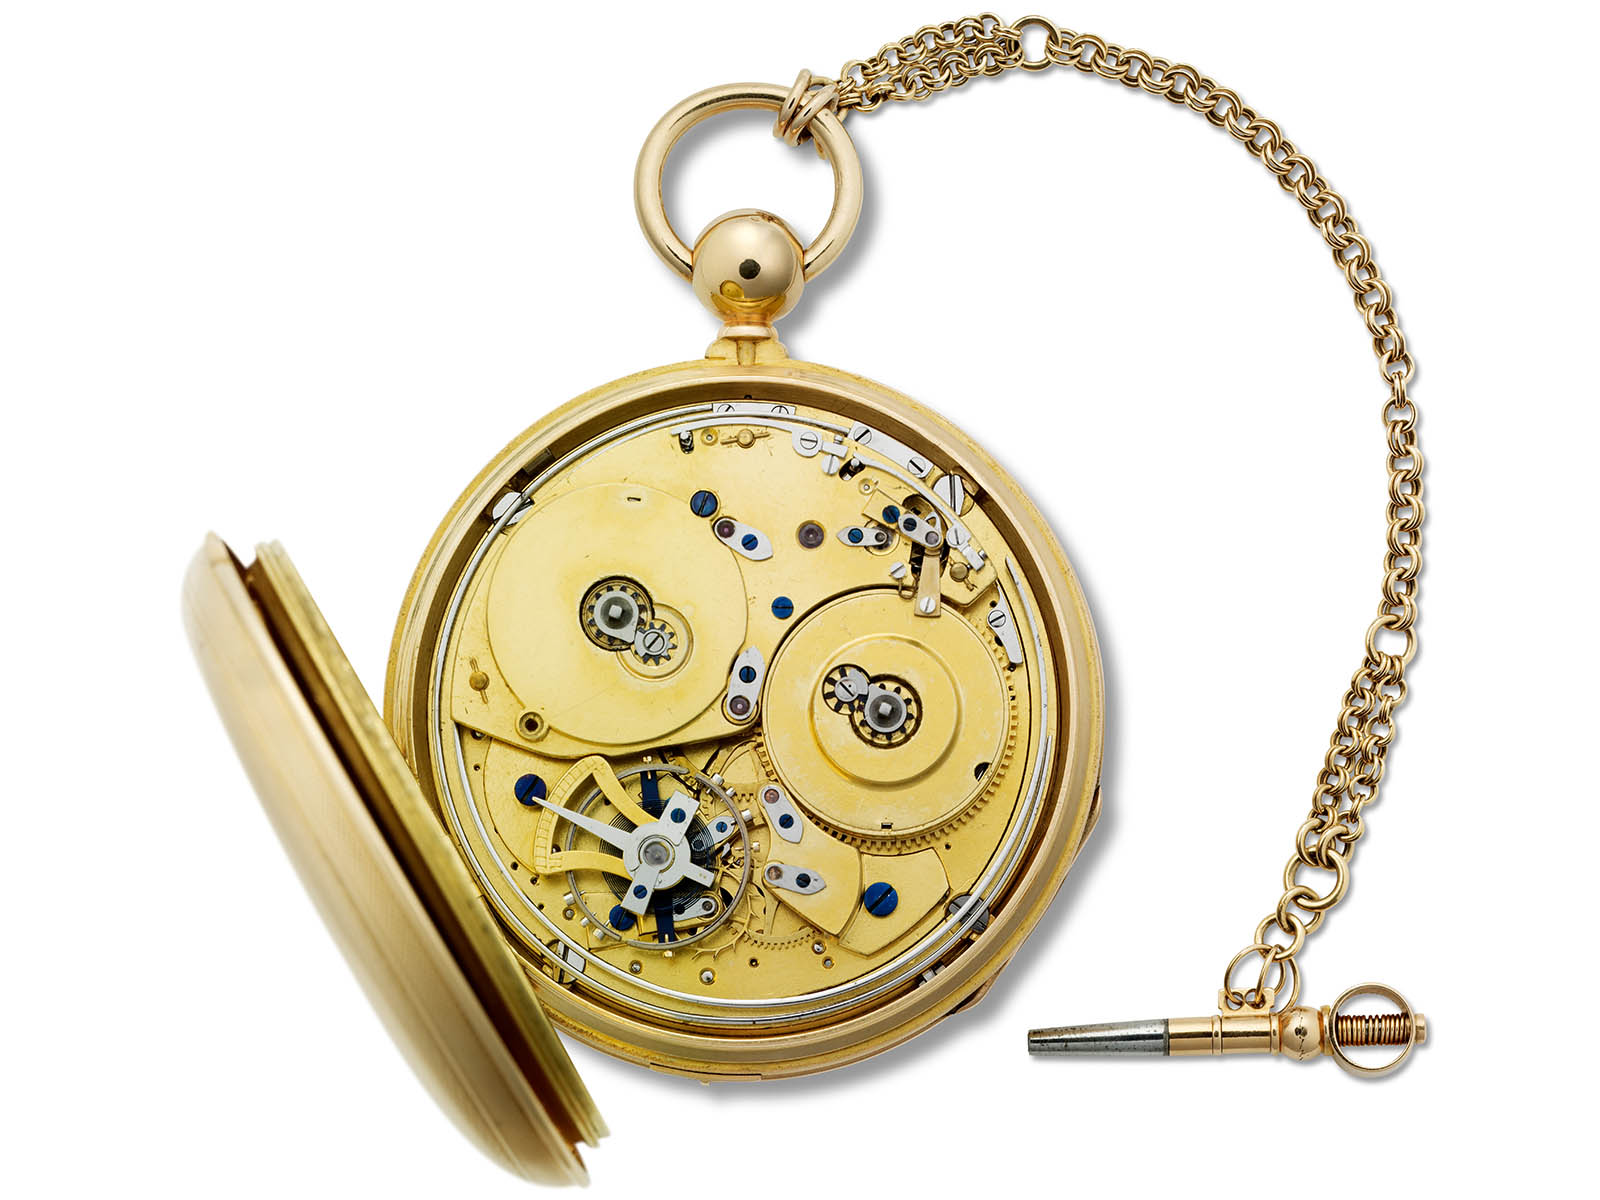 breguet-gong-spring-repeating-watches-1783.jpg